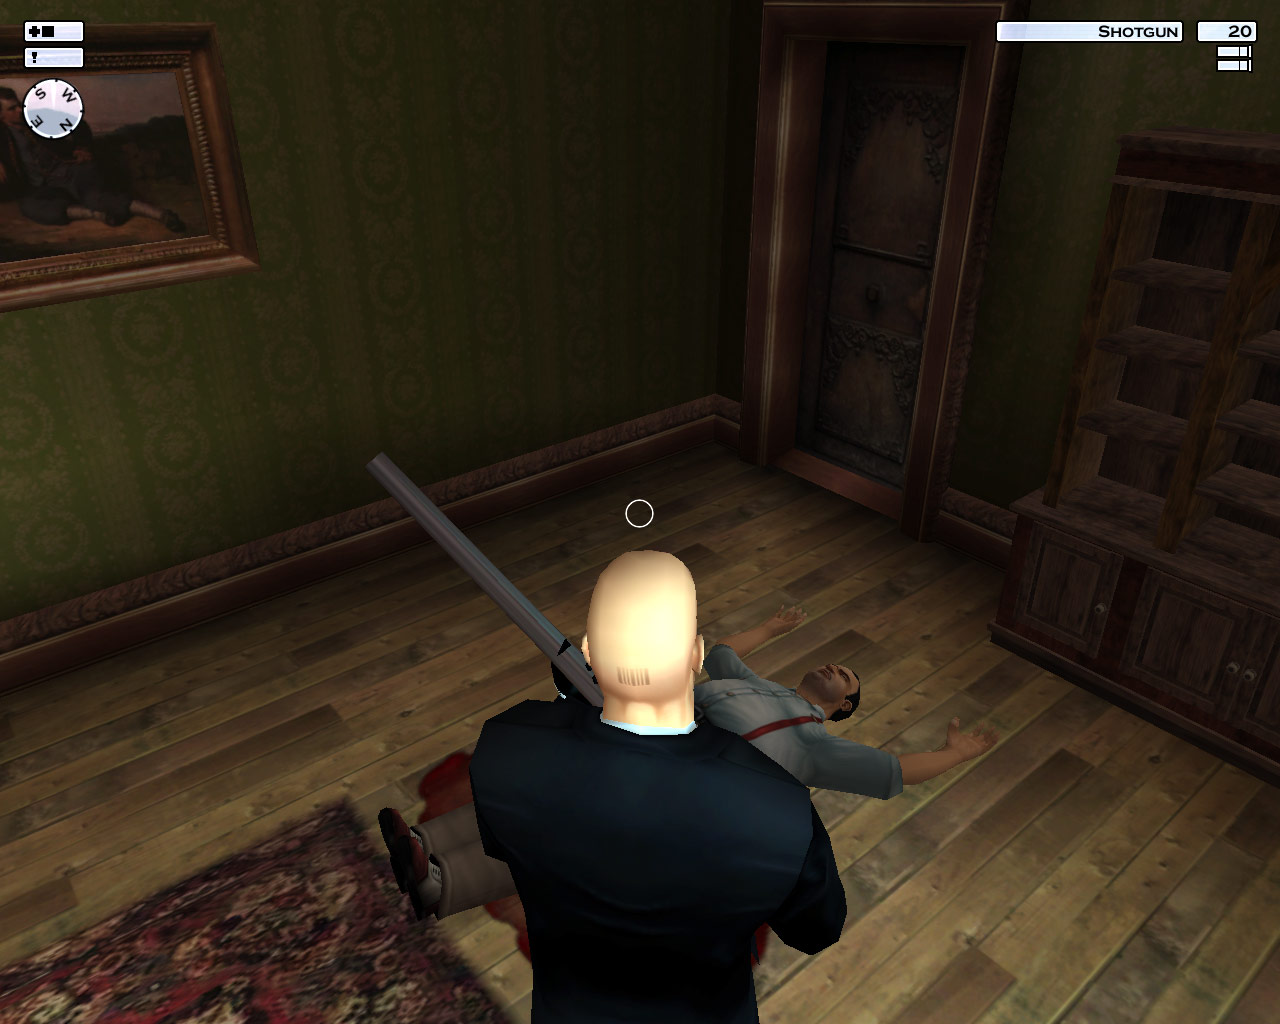 hitman 2 silent assassin download free pc